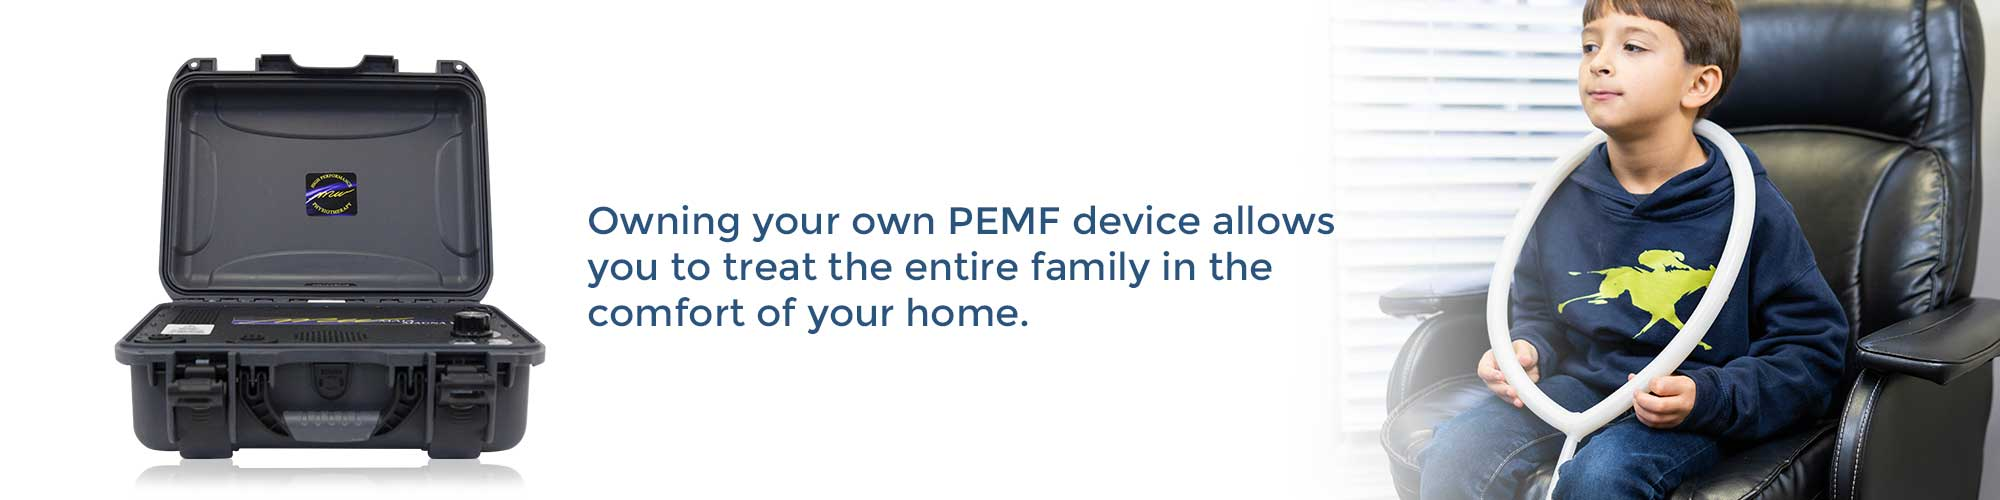 Owning your own PEMF device allows you to treat the entire family in the comfort of your home